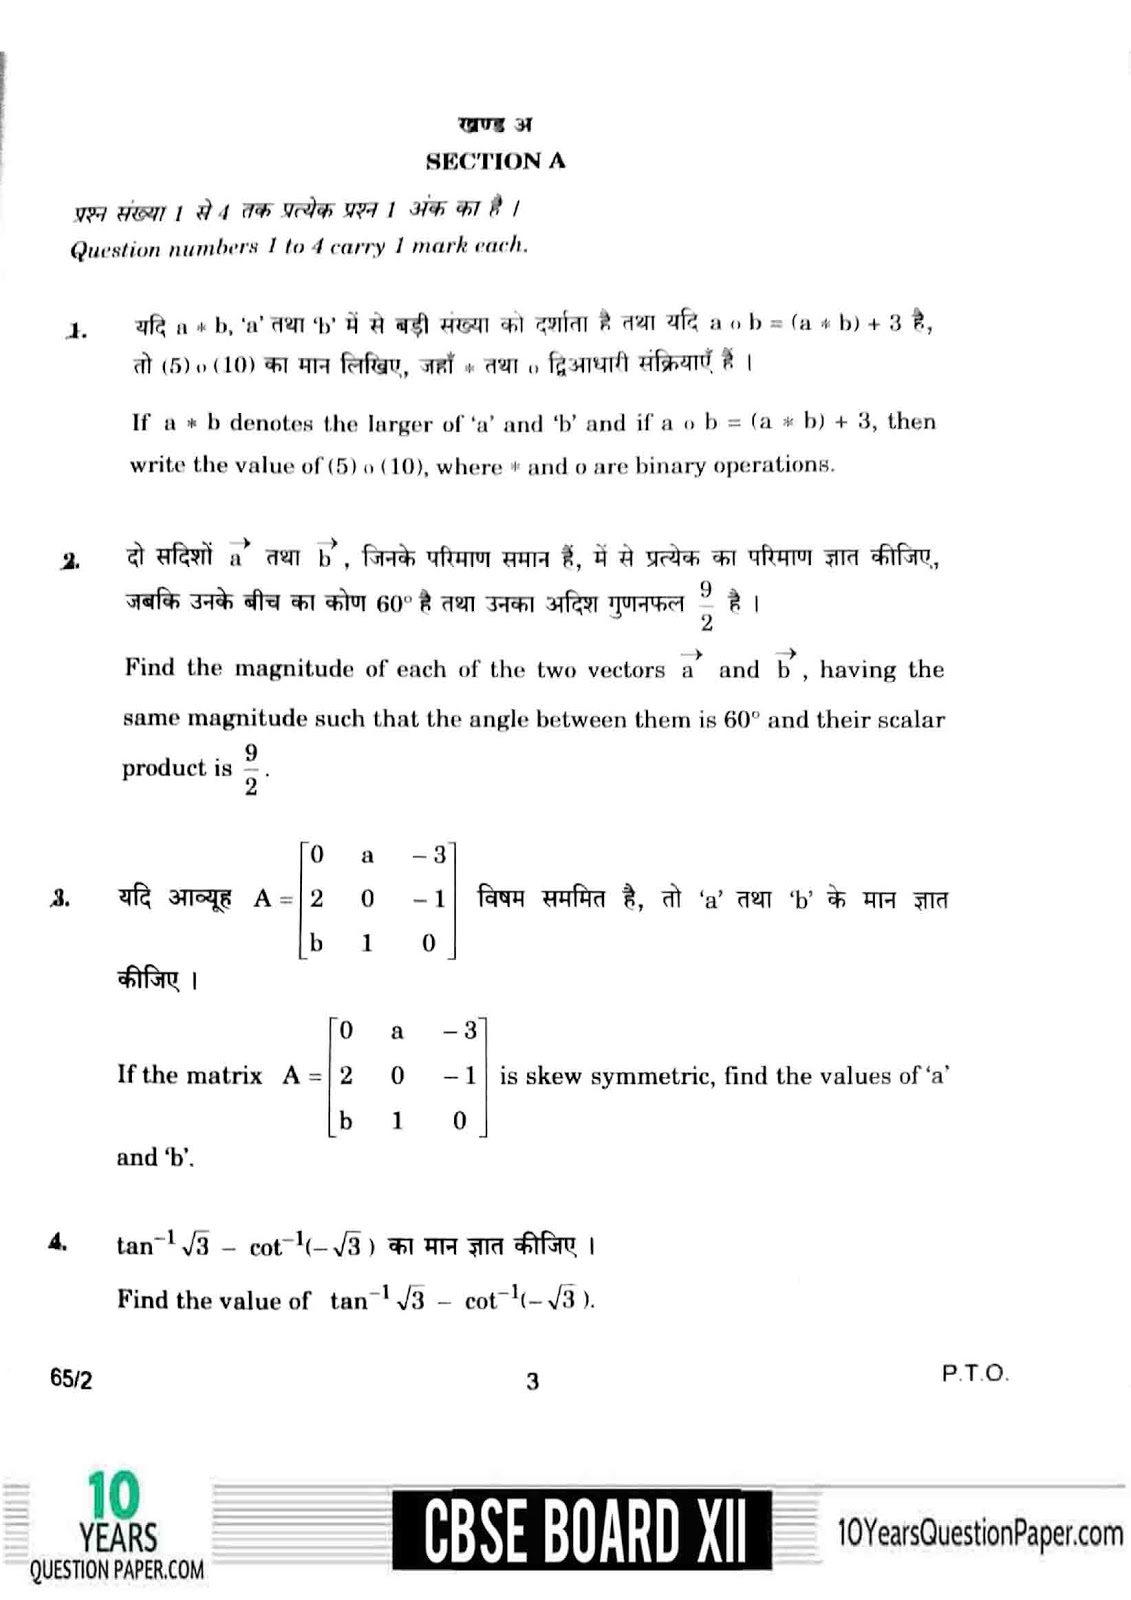 CBSE class 12 Maths 2018 question paper page-02